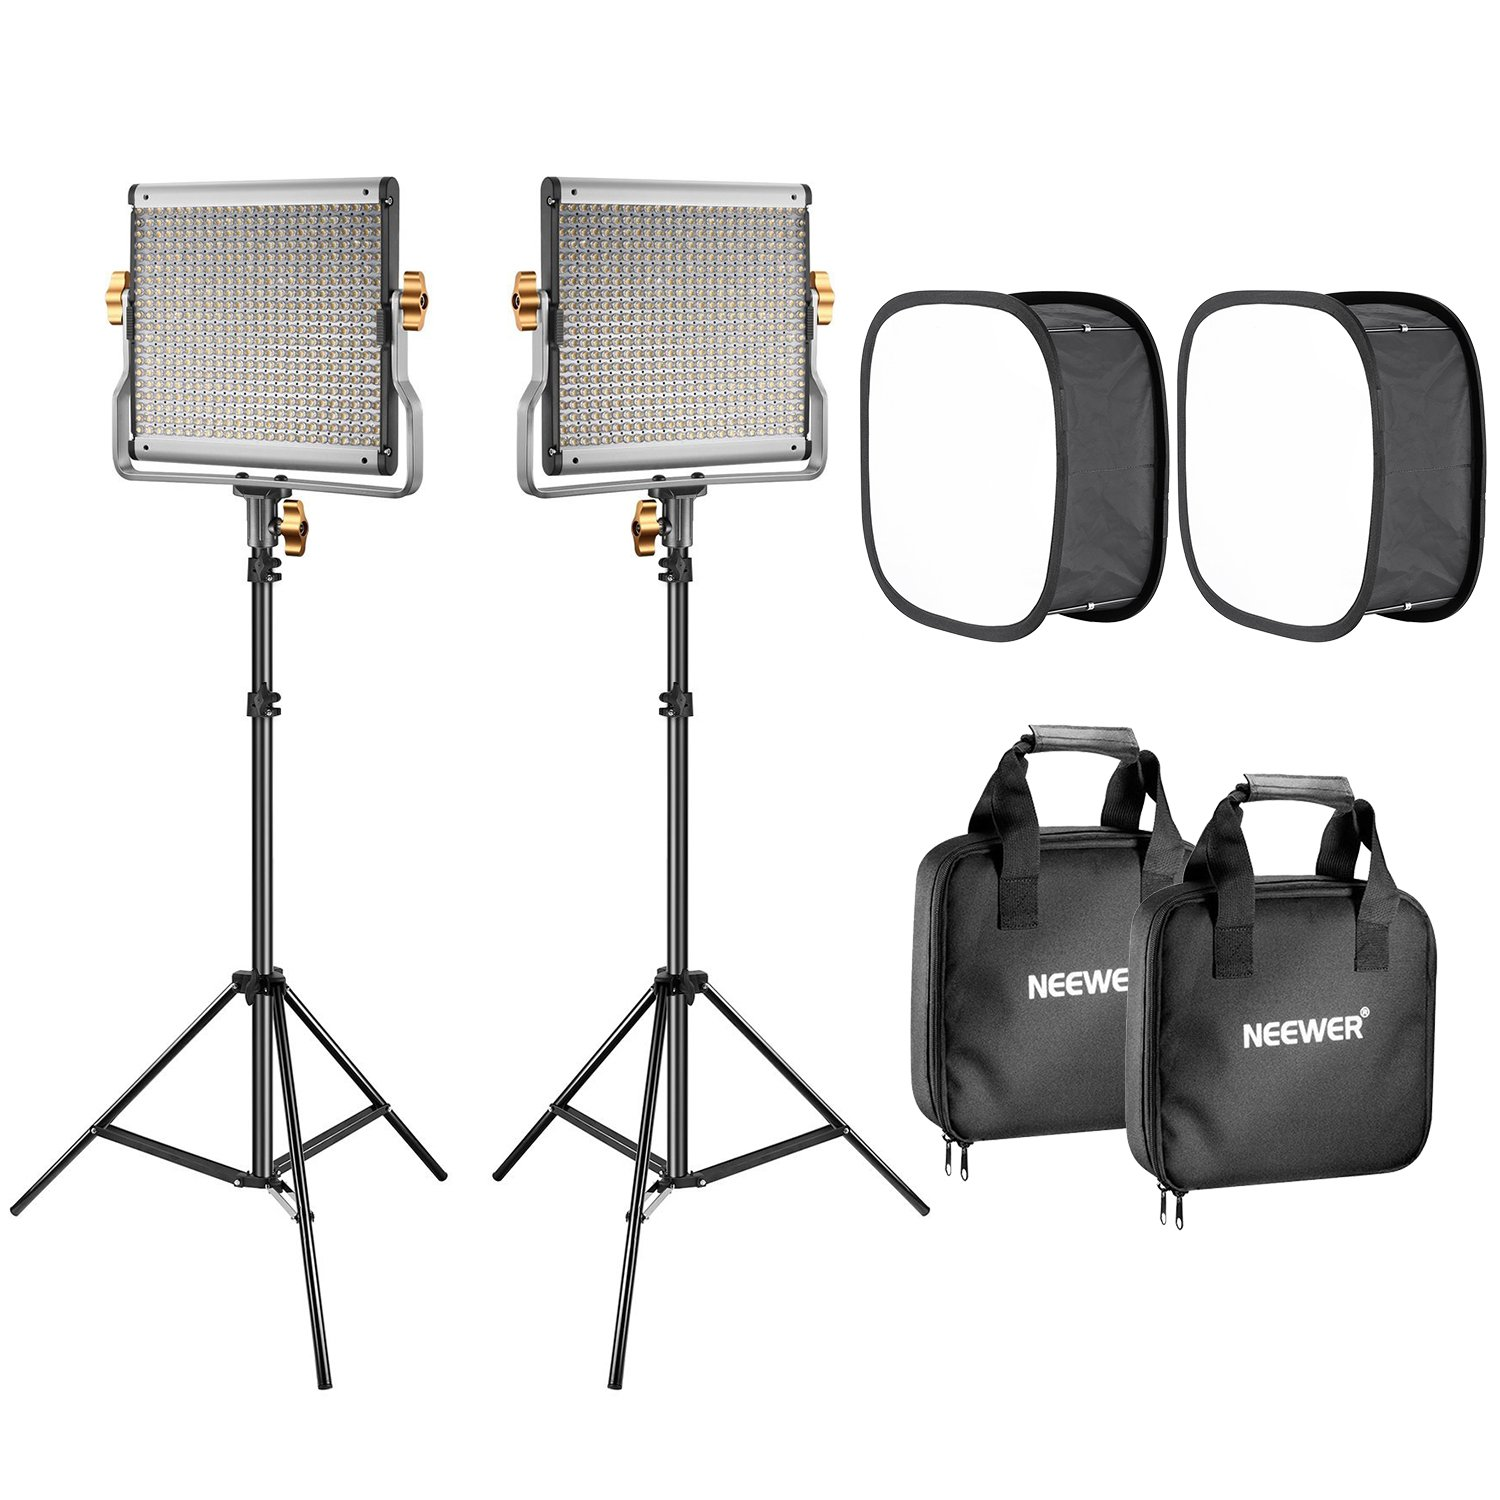 Neewer 2-Pack 480 LED Video Light Lighting Kit: Dimmable Bi-Color LED Panel(3200-5600K, CRI 96+), 75-Inch Light Stand and Softbox Diffuser for Photo Studio Product Portrait, YouTube Video Photography by Neewer